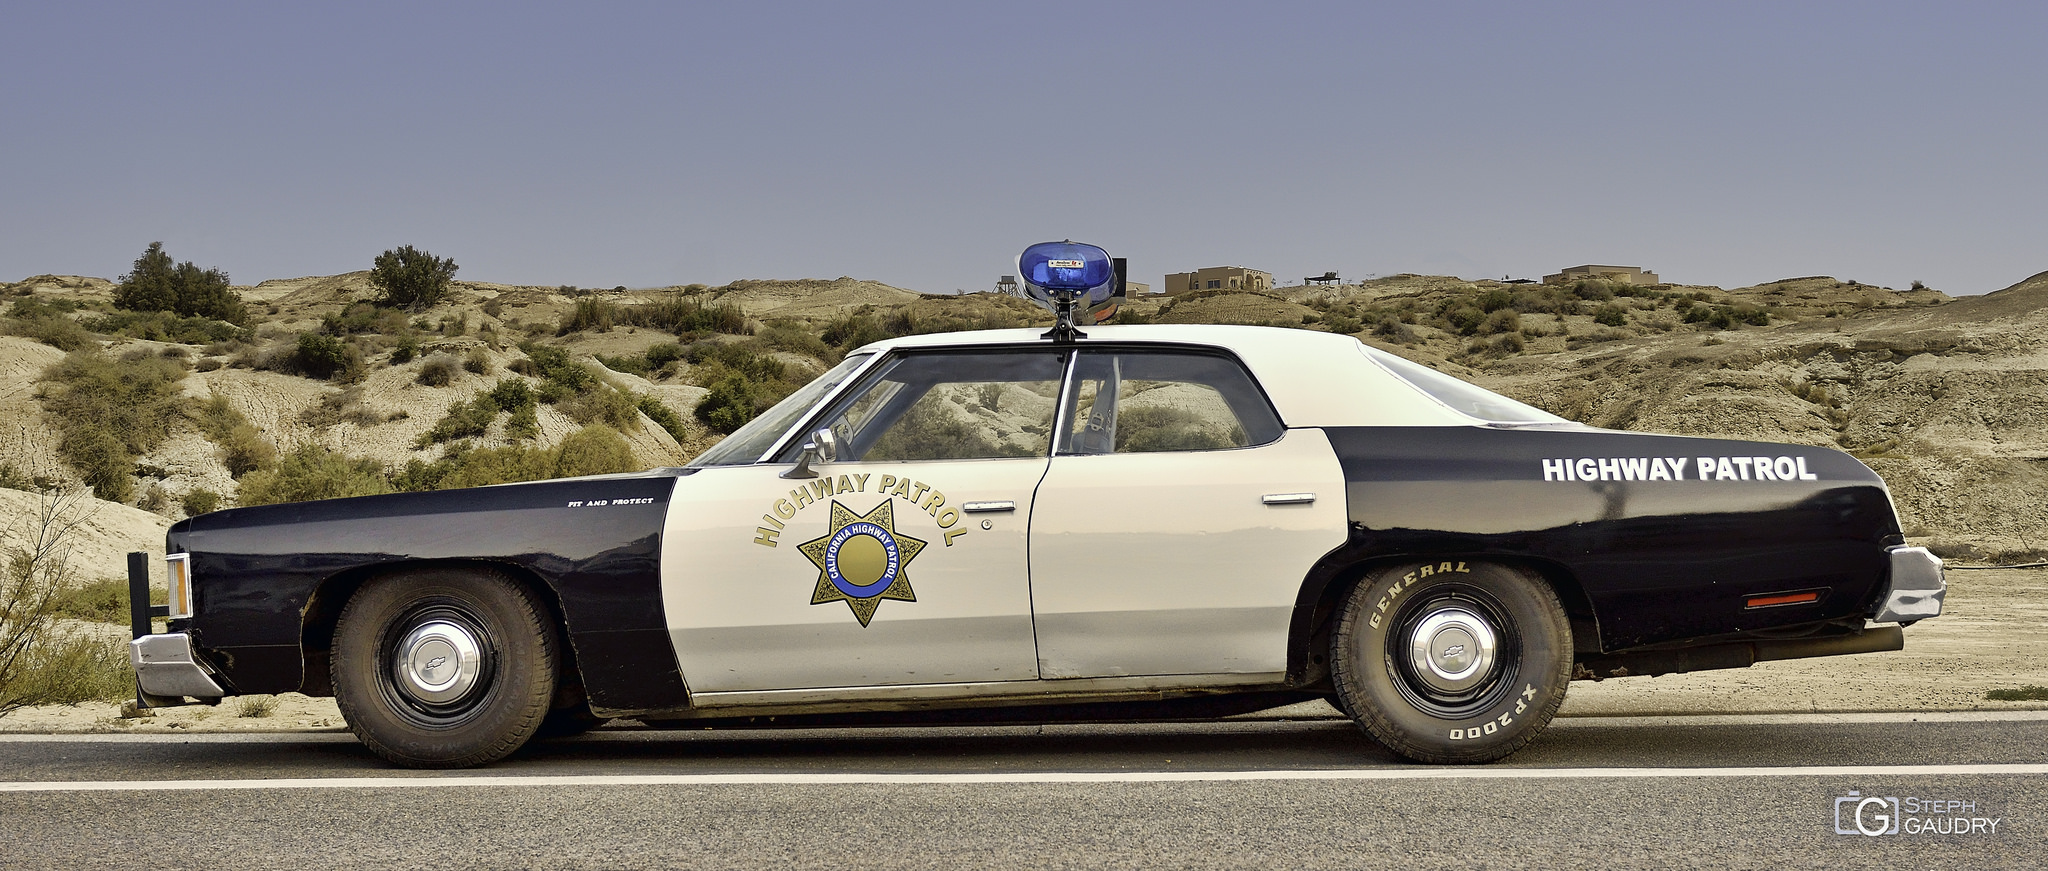 California highway patrol - pit and protect [Click to start slideshow]